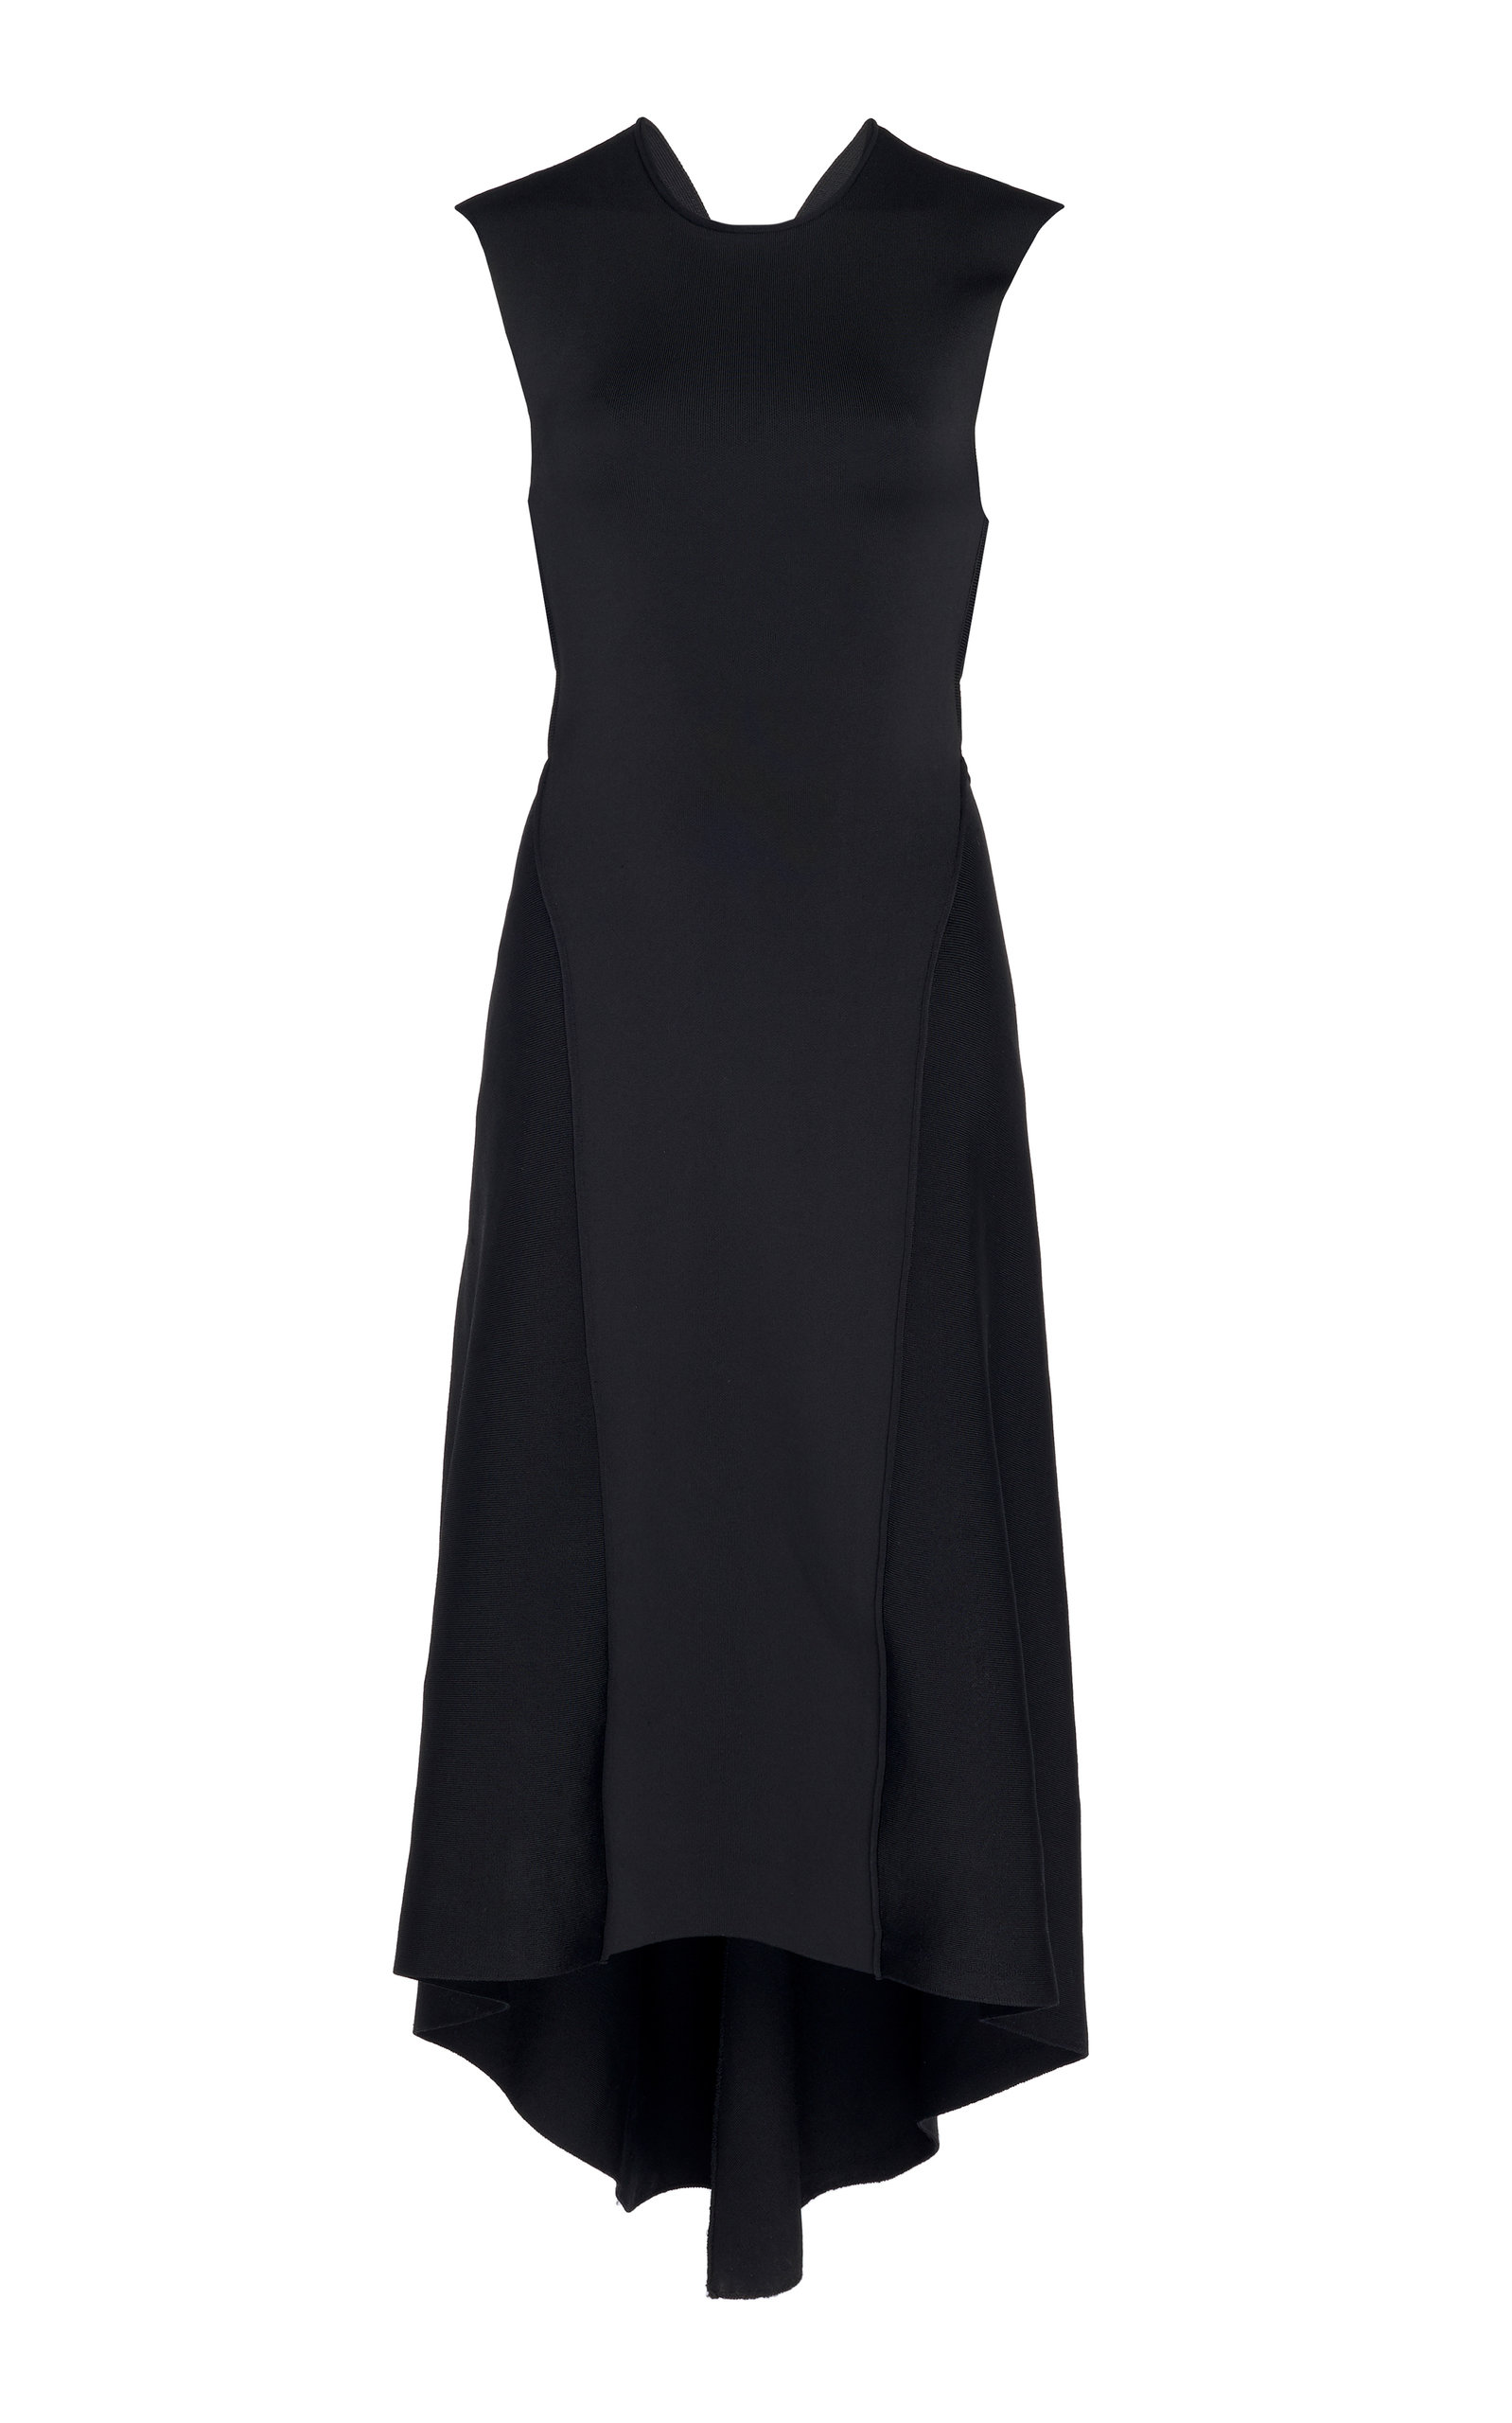 30c9b771b0e97 Cross Back High-Low Midi Dress by Victoria Beckham | Moda Operandi